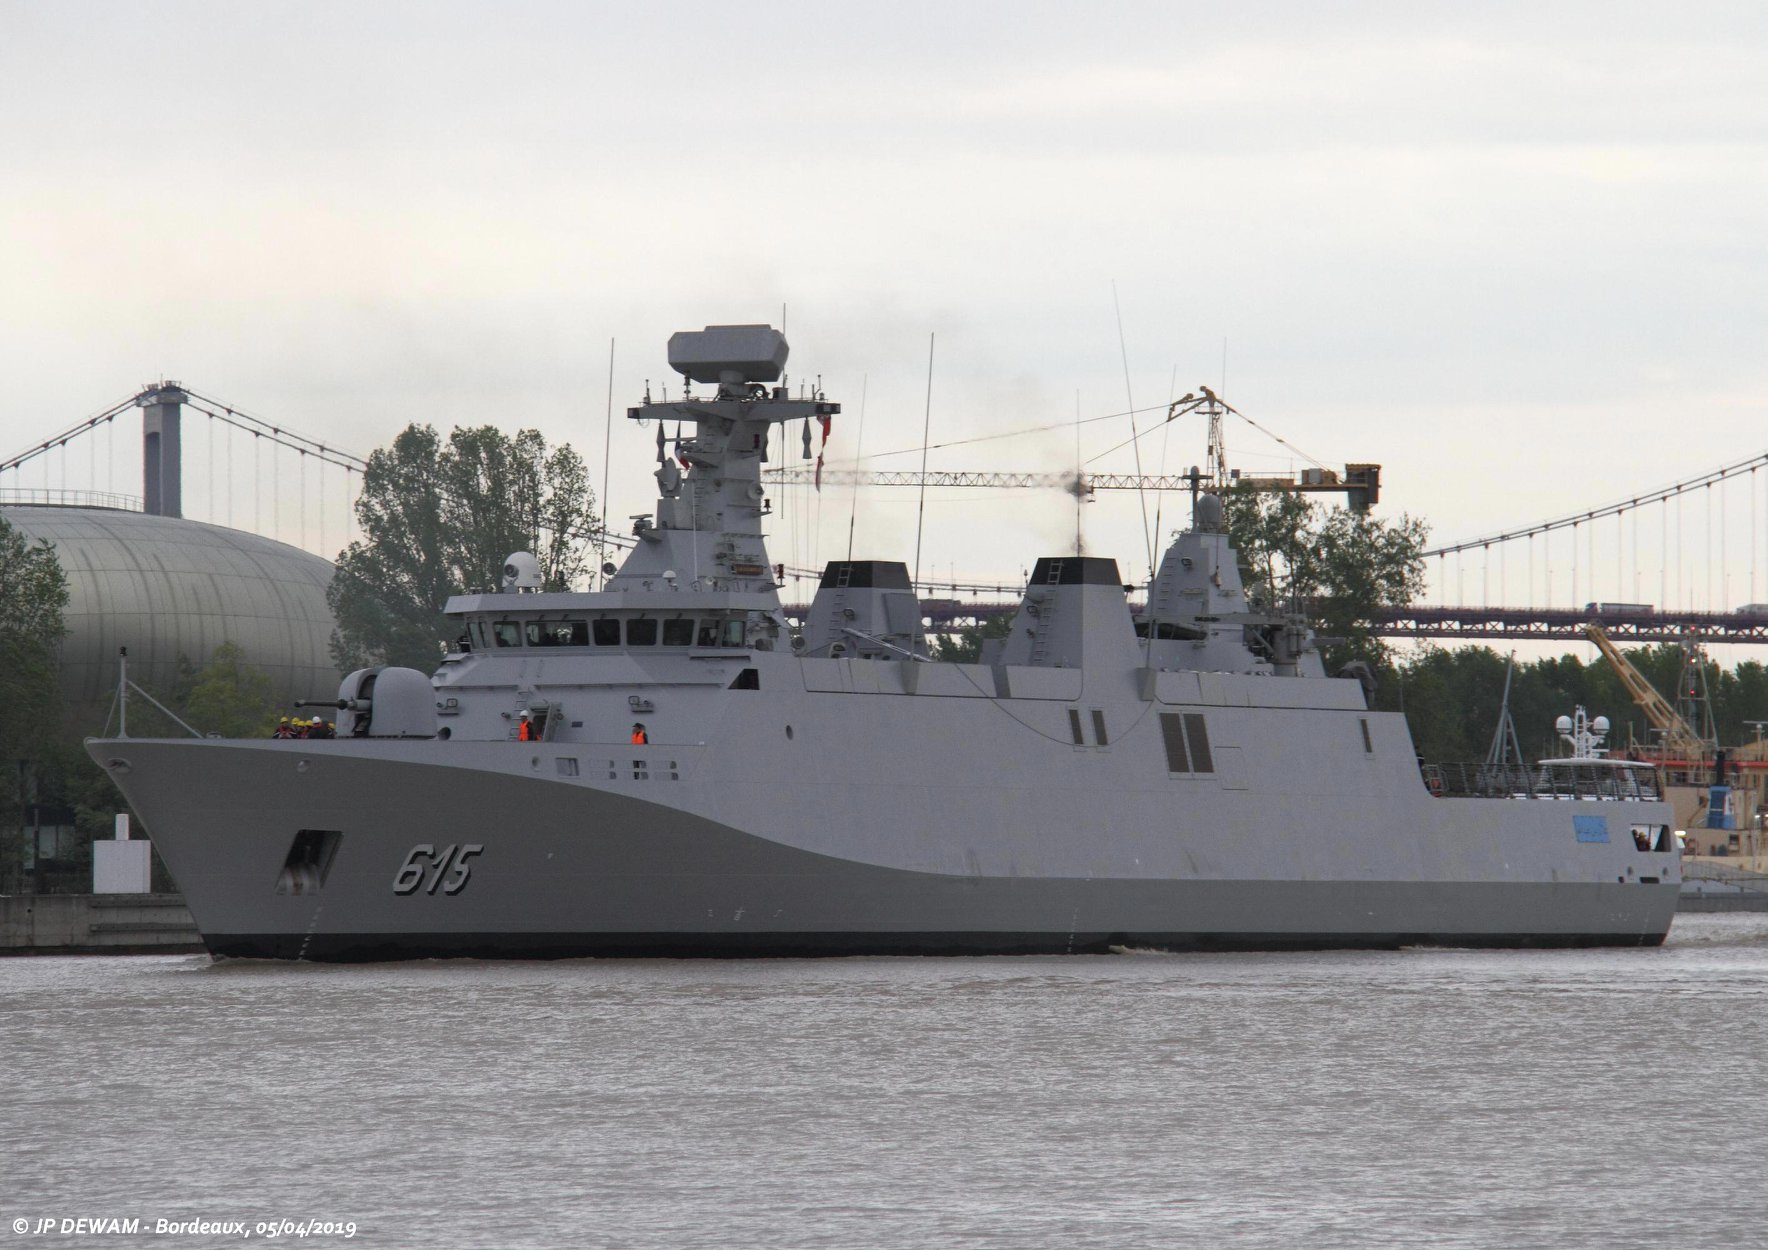 Royal Moroccan Navy Sigma class frigates / Frégates marocaines multimissions Sigma - Page 25 46635900035_d2e93997b7_o